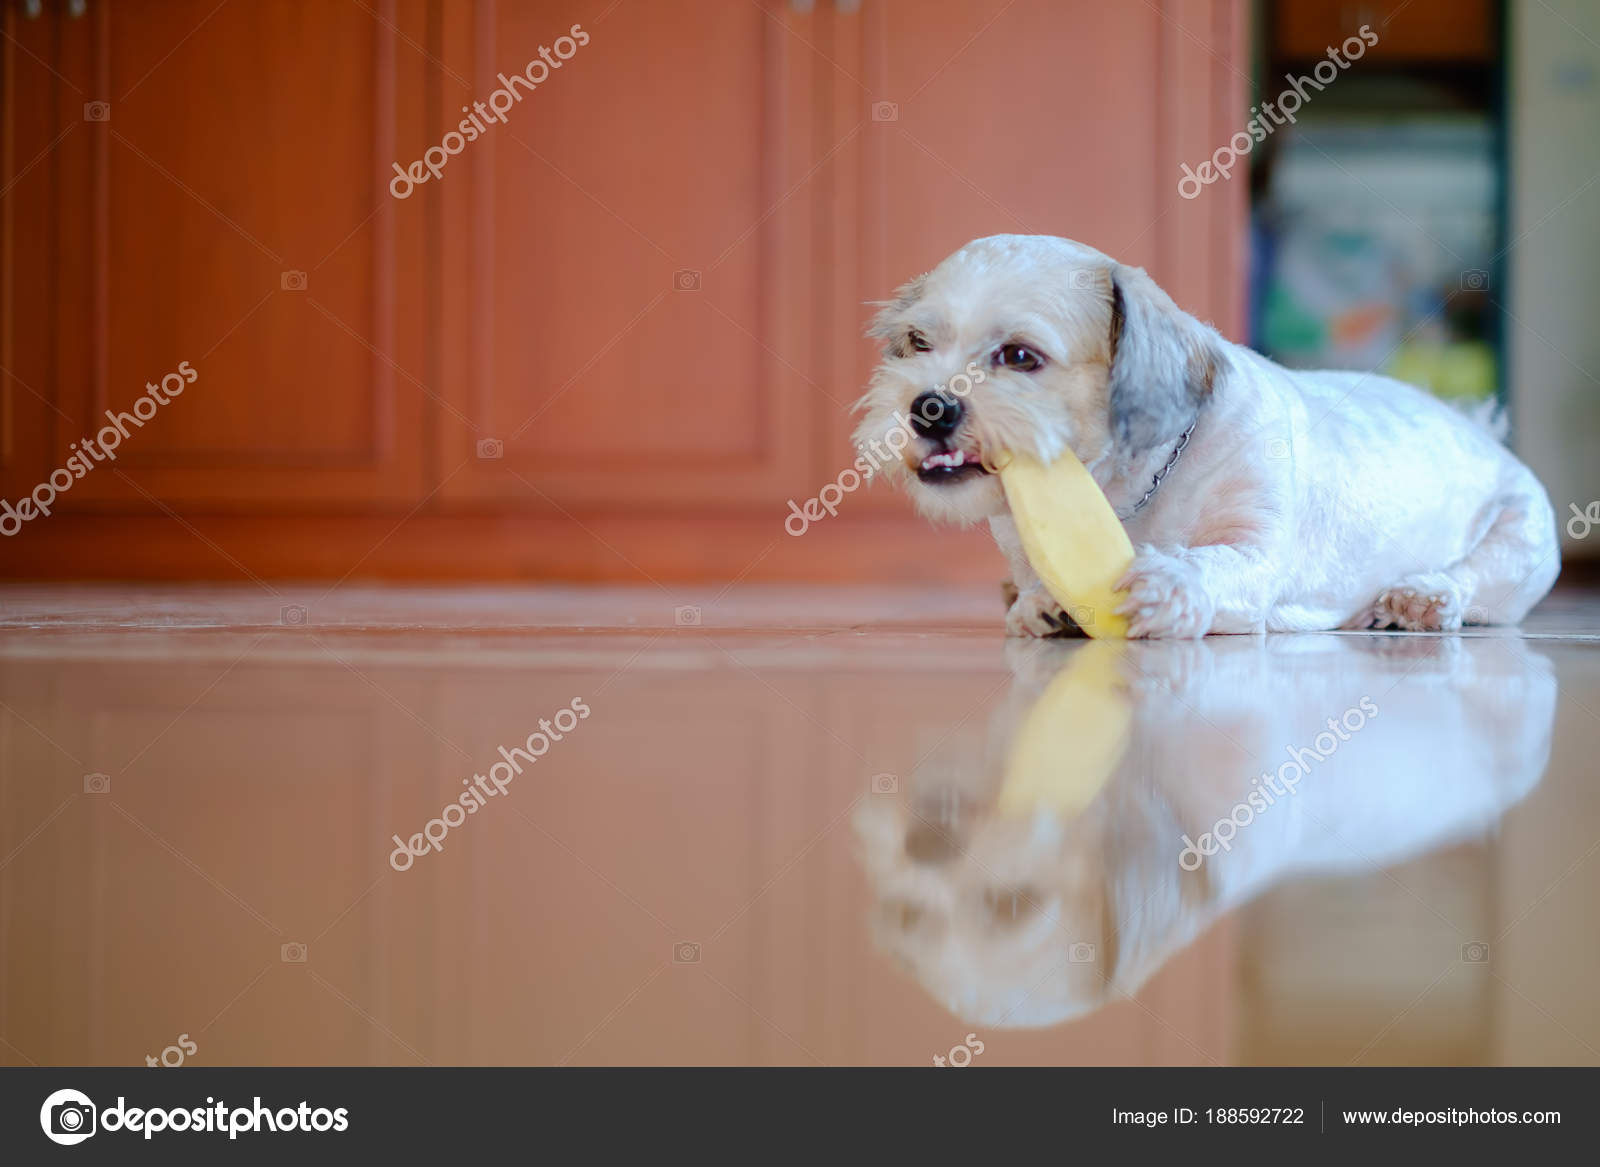 Cutely White Short Hair Shih Tzu Dog Is Happy To Gnaw At A Mango